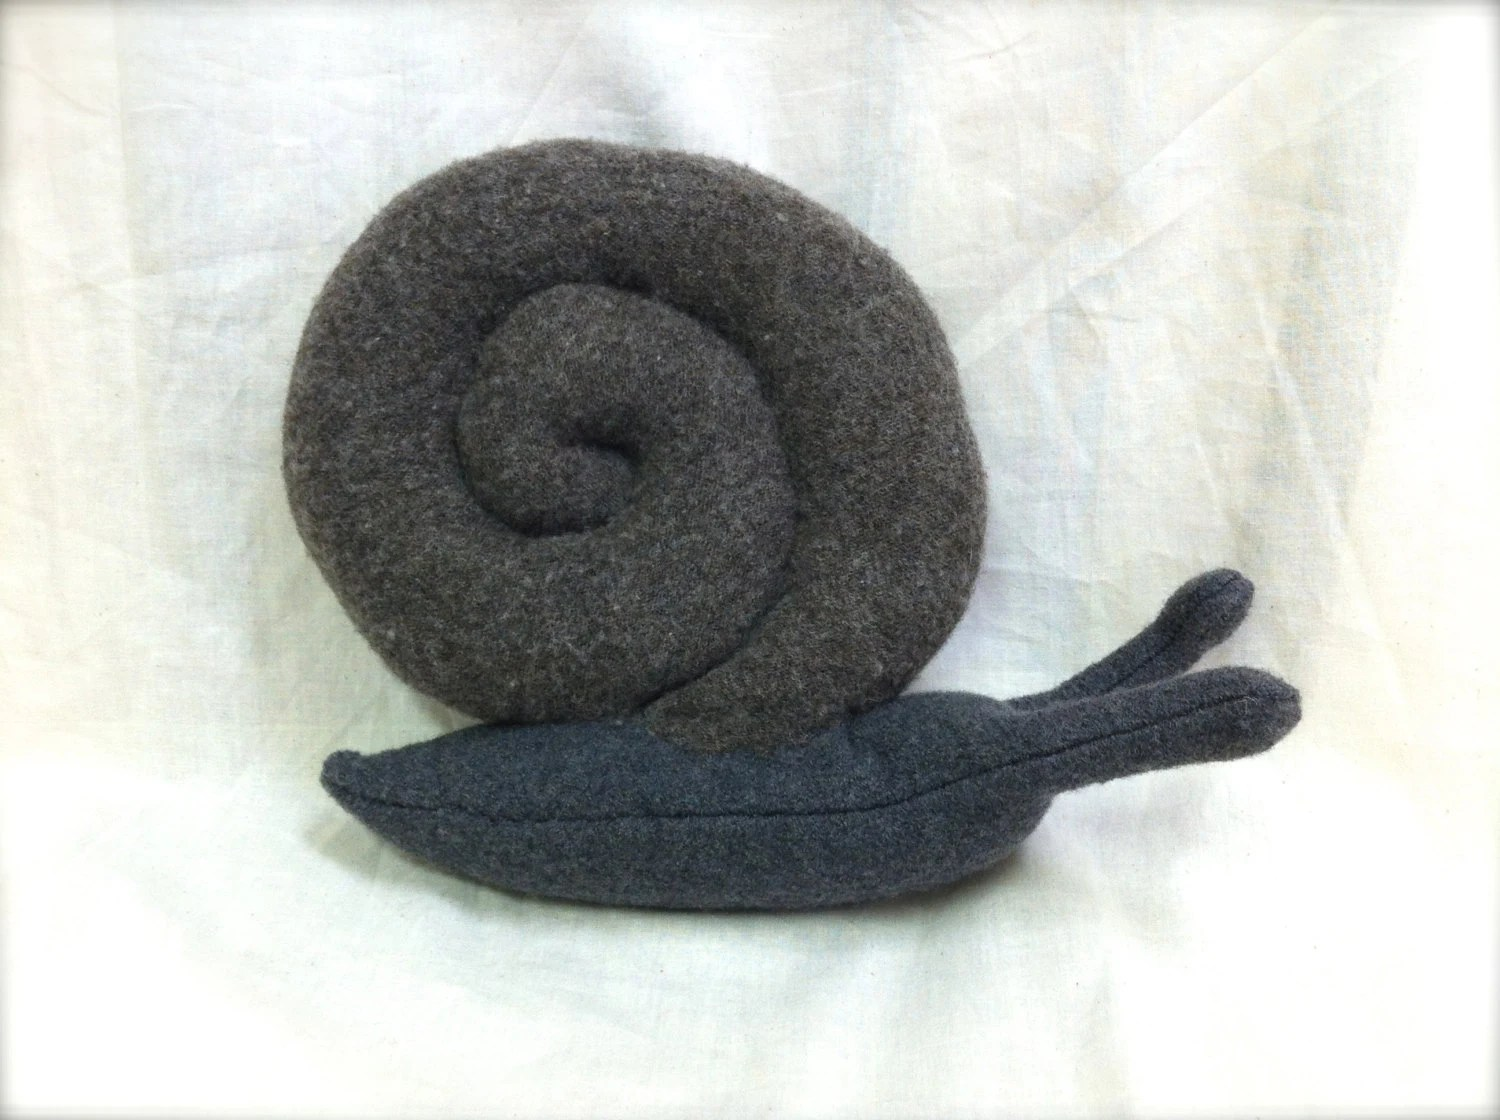 Snail Shaped Decorative Cushion Throw Pillow made from recycled wool - GlindaBunny